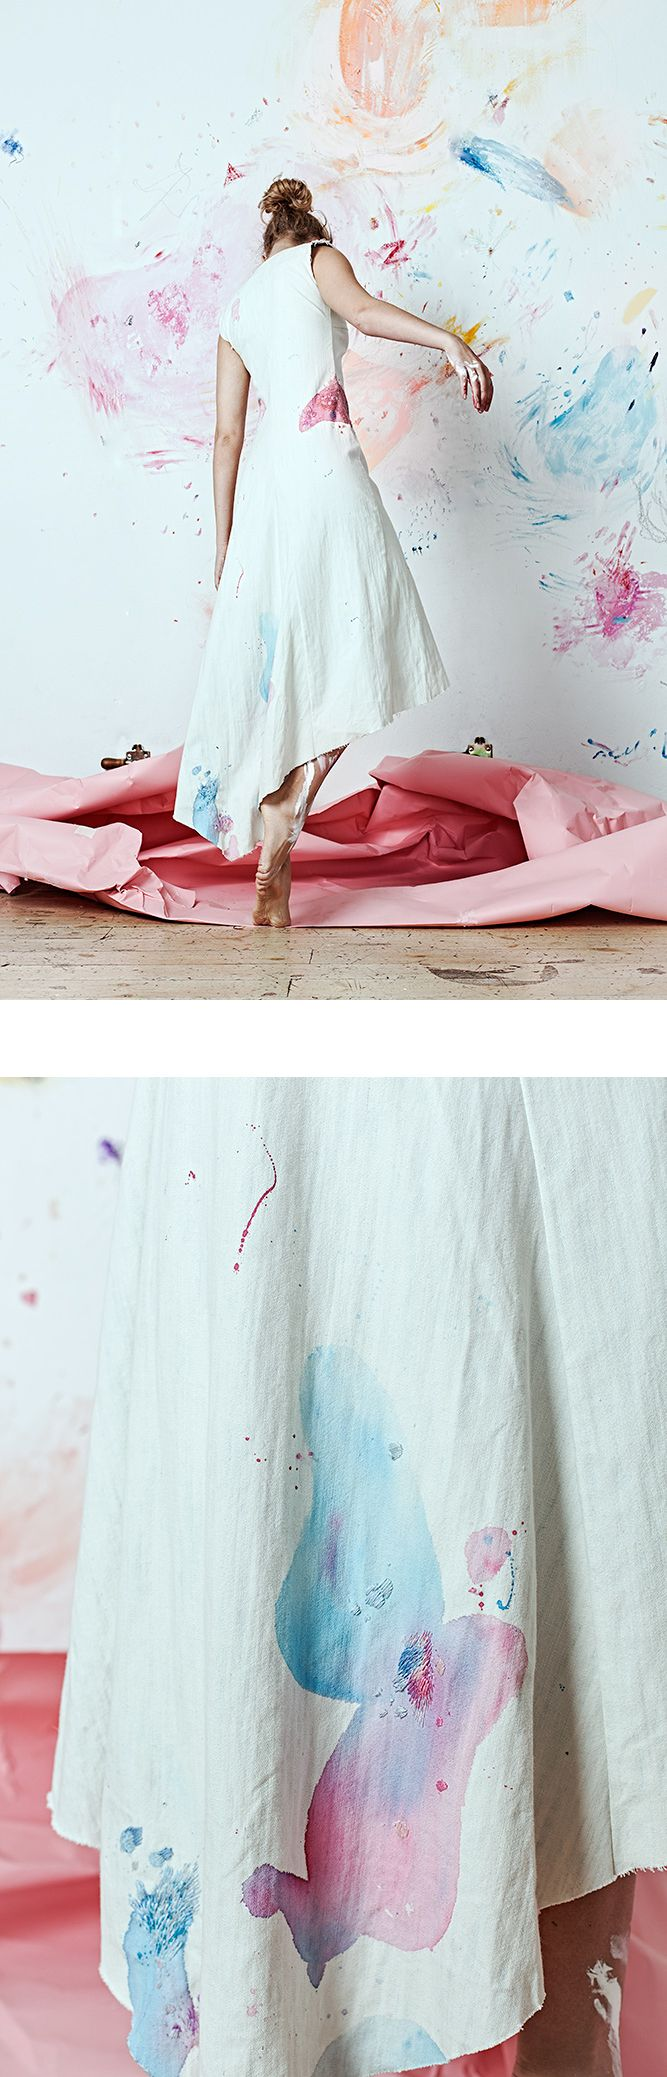 Best Ideas About Watercolor Dress On Pinterest Dress - How to make designer dress at home